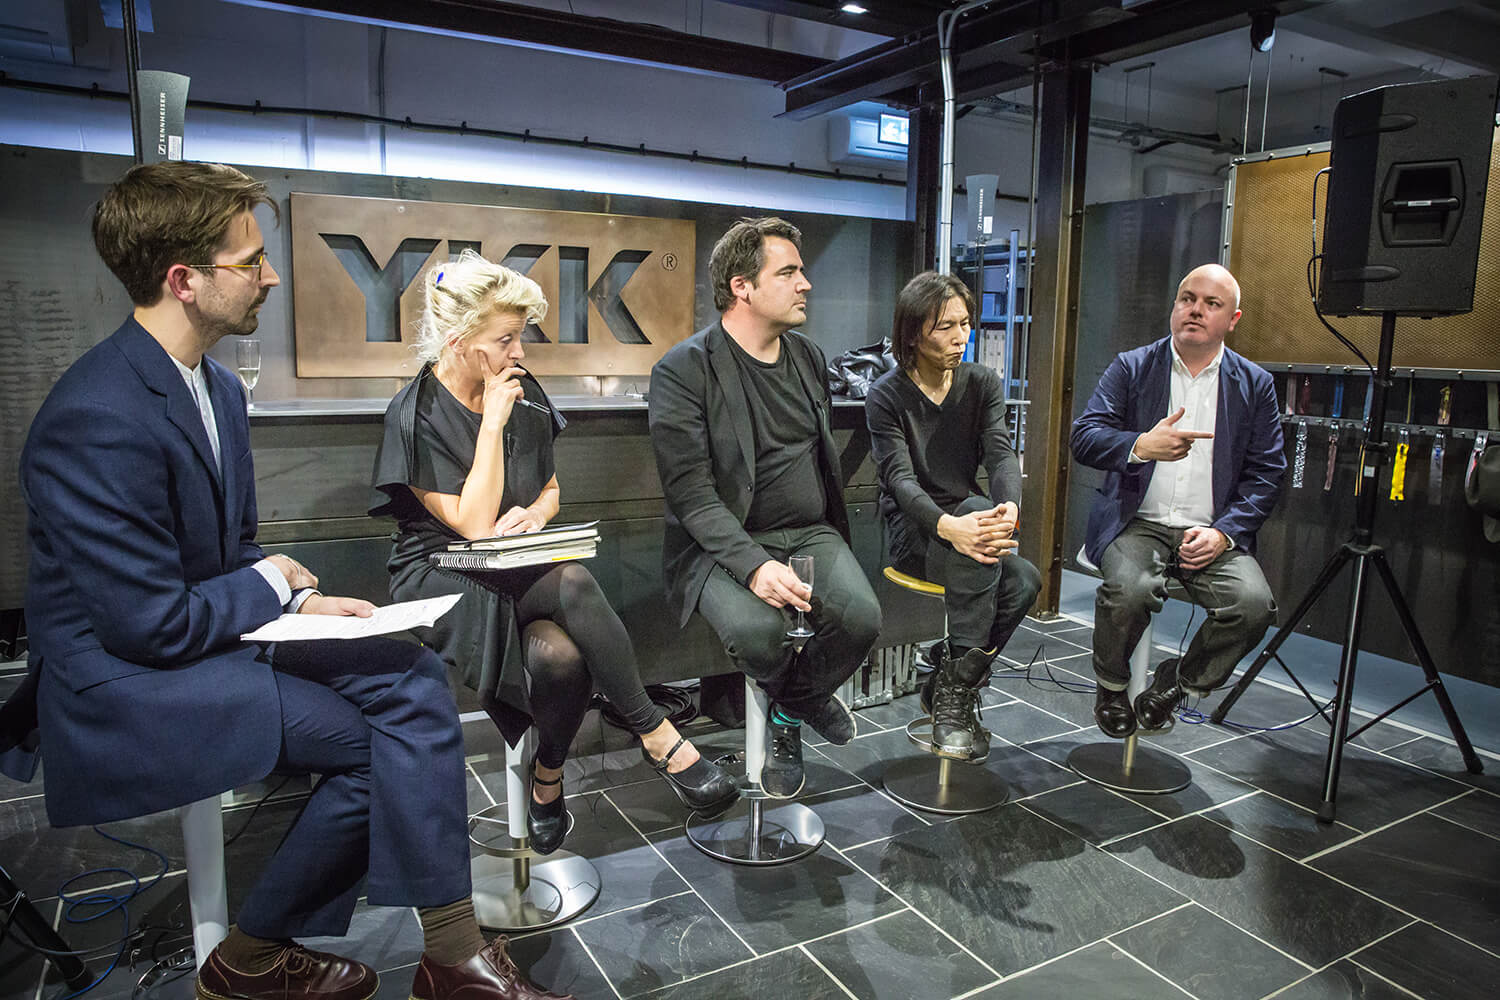 Zowie Broach, Sam Jacob, Kei Kagami and Alistair O'Neill join Disegno magazine's Oli Stratford for the panel discussion at YKK.